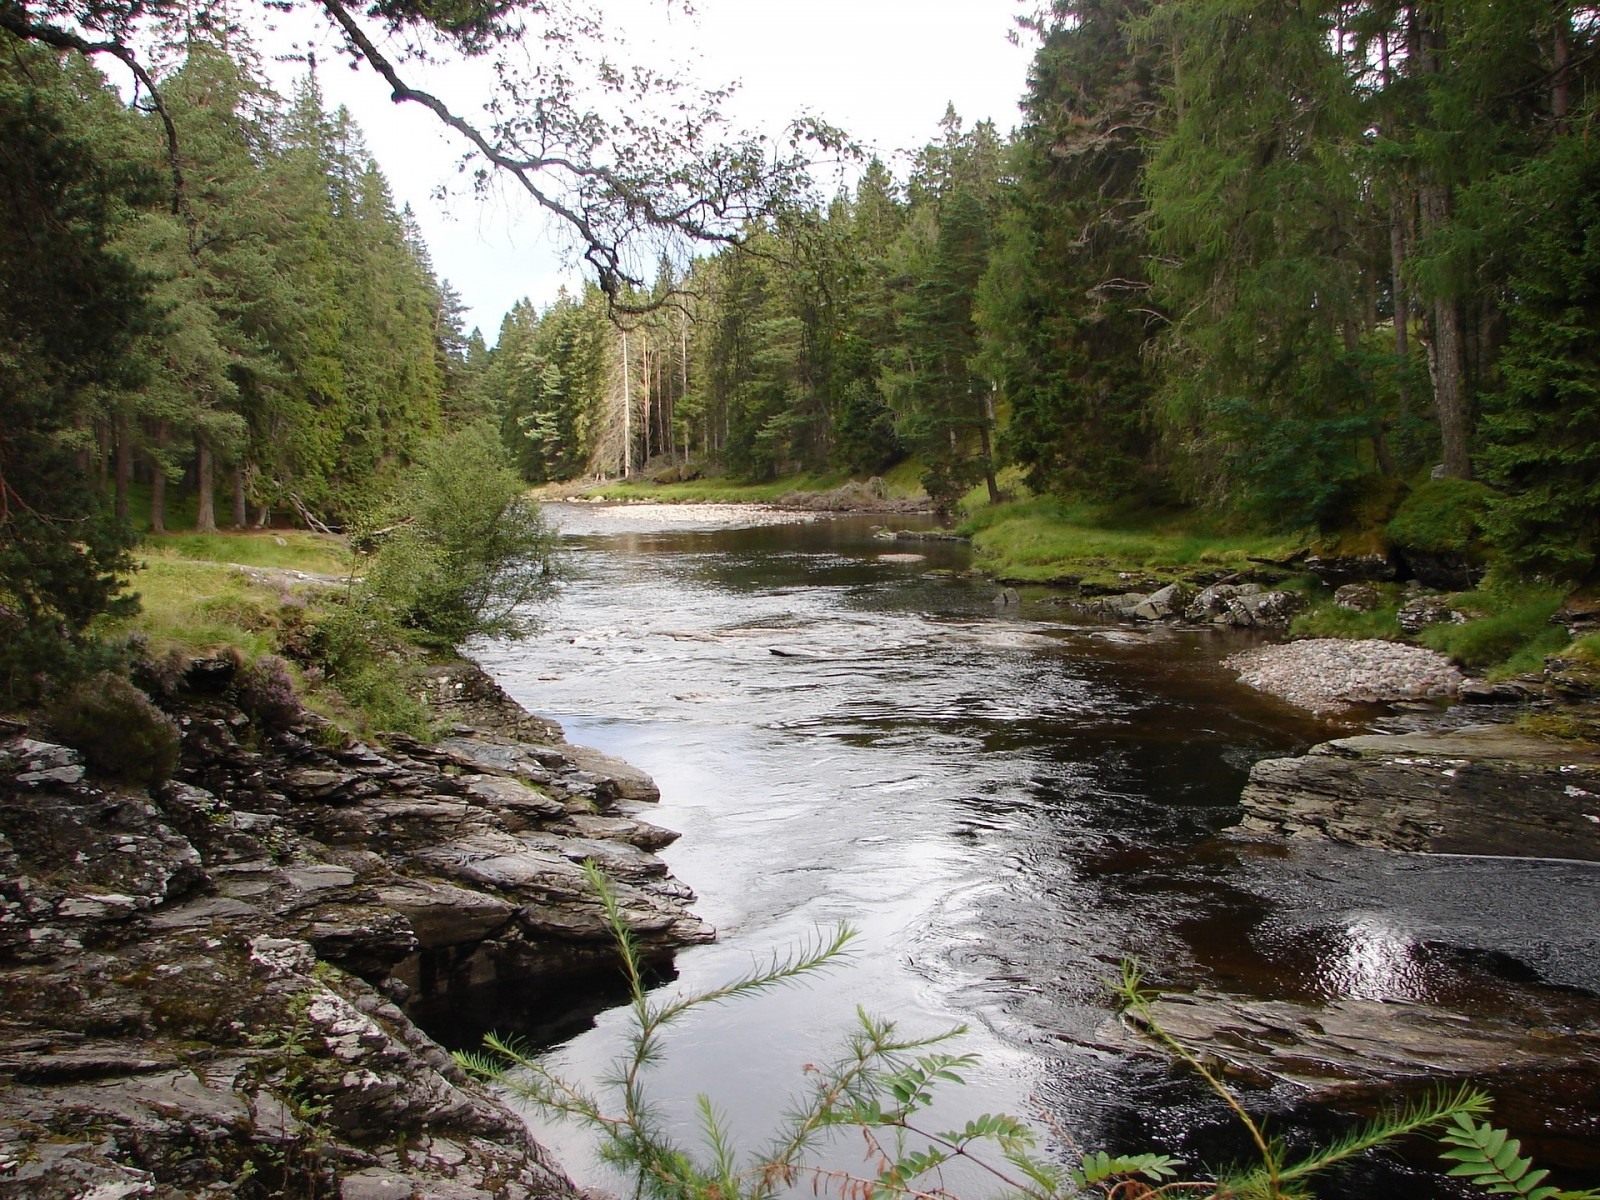 River Dee, Scotland, Uk, Pixabay.com